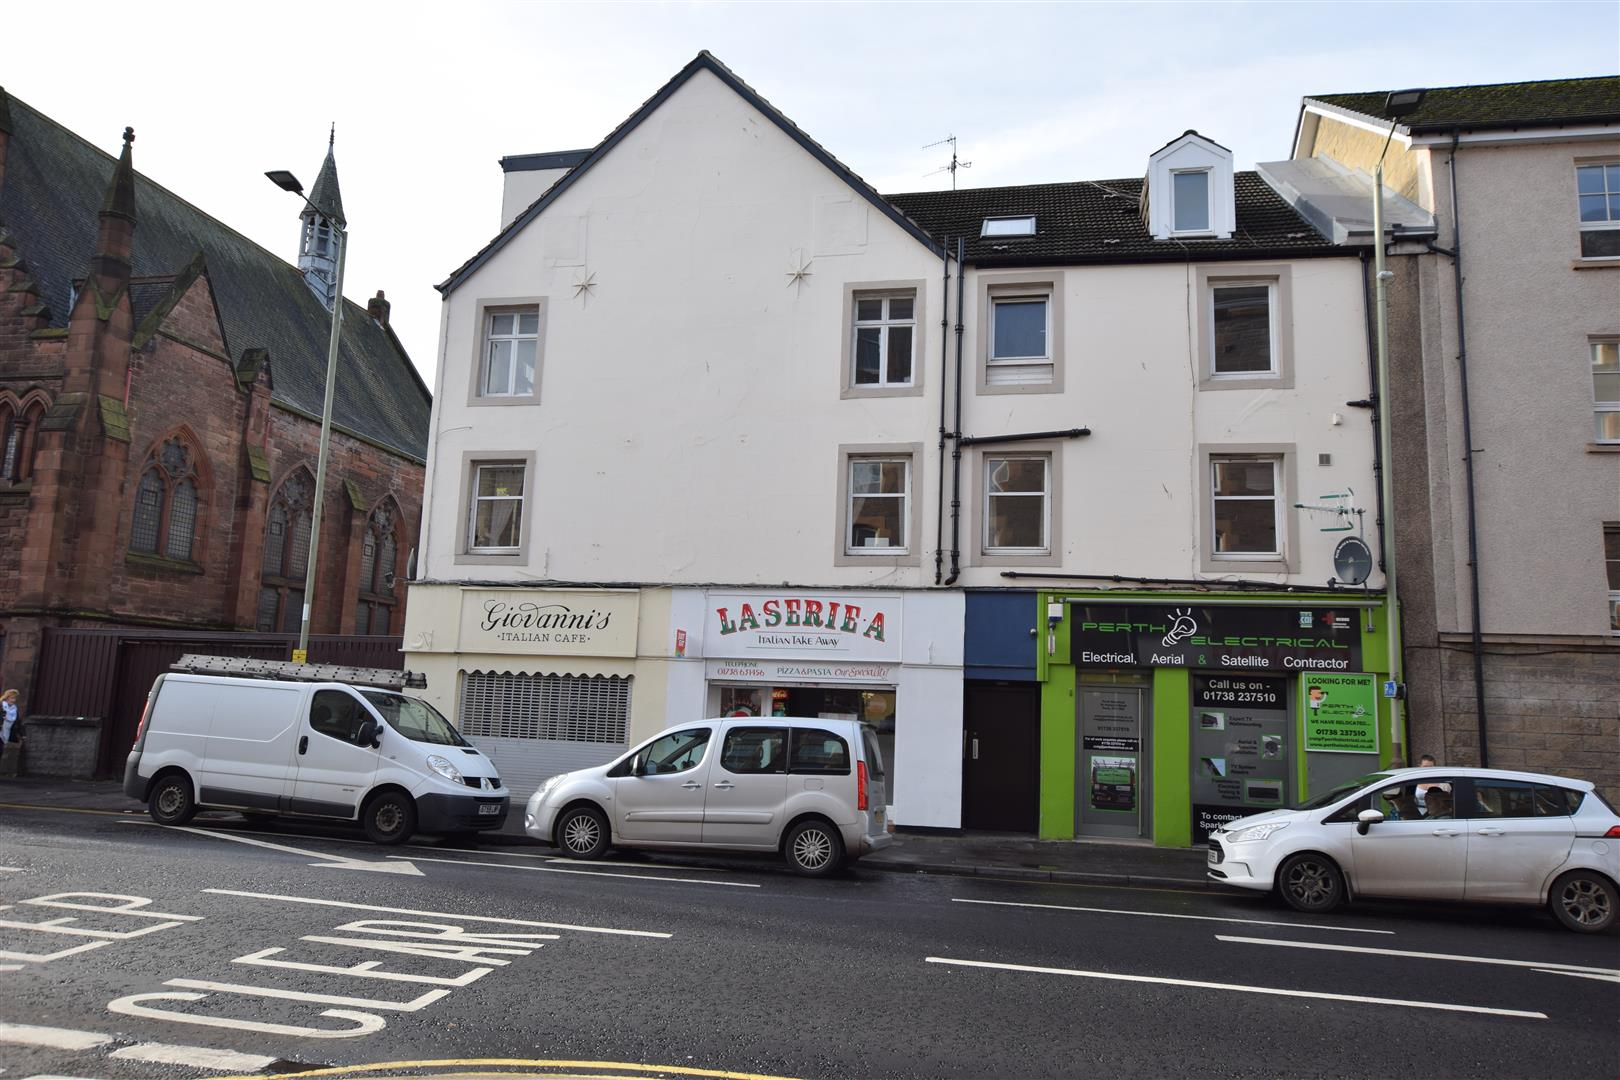 28A, Kinnoull Street, Perth, Perthshire, PH1 5EX, UK